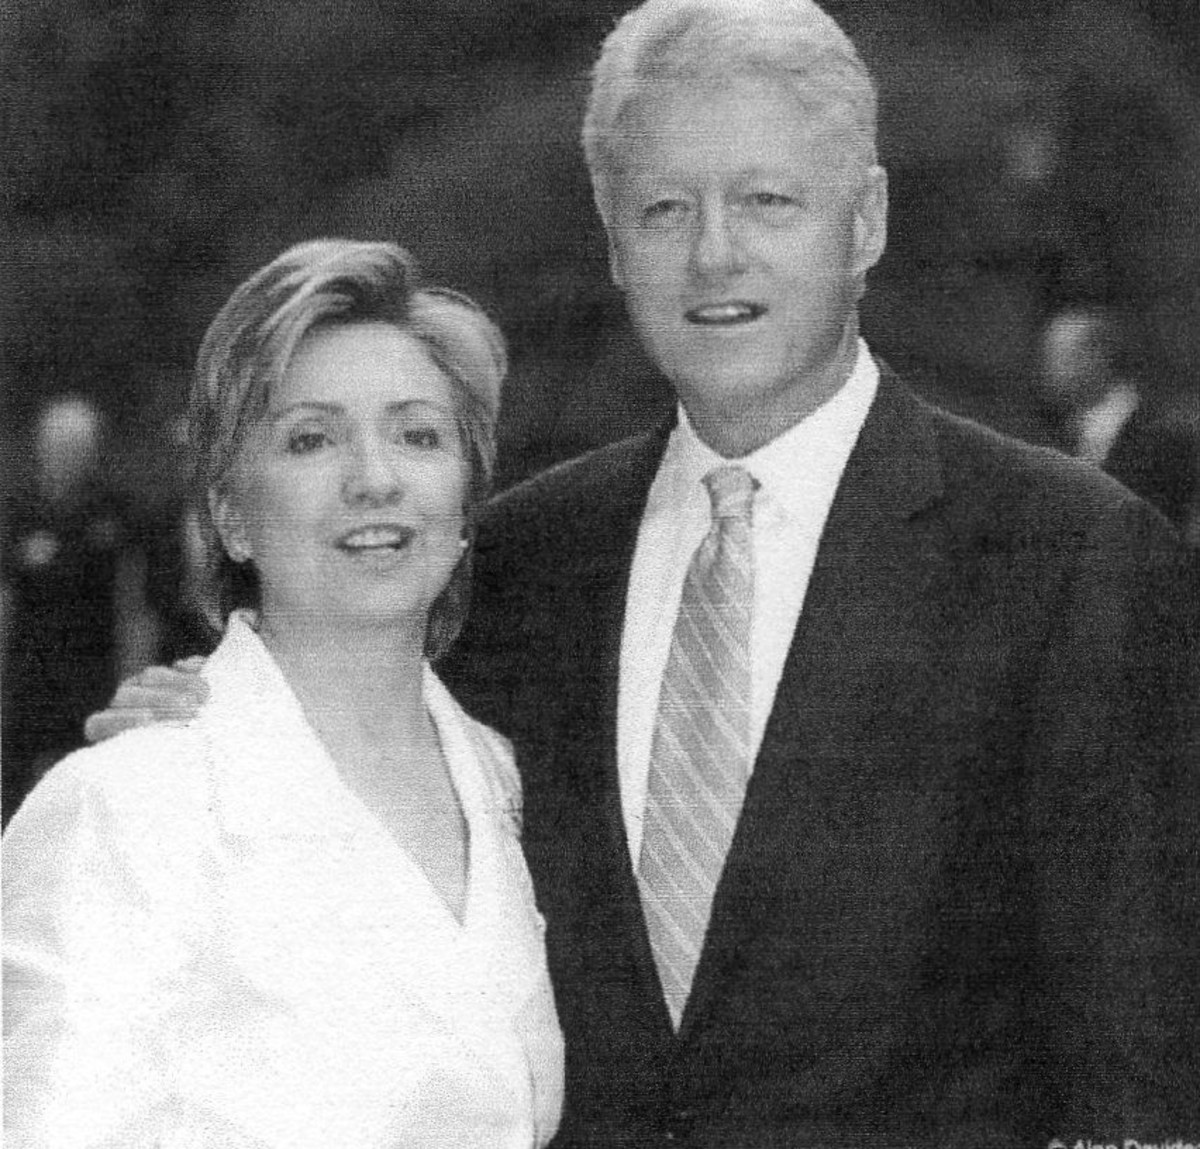 Bill Clinton, the forty-second president, Democrat, 1993-2001, was the first to pay down principle on the debt in decades. Still the national debt increased by $1.3 trillion.